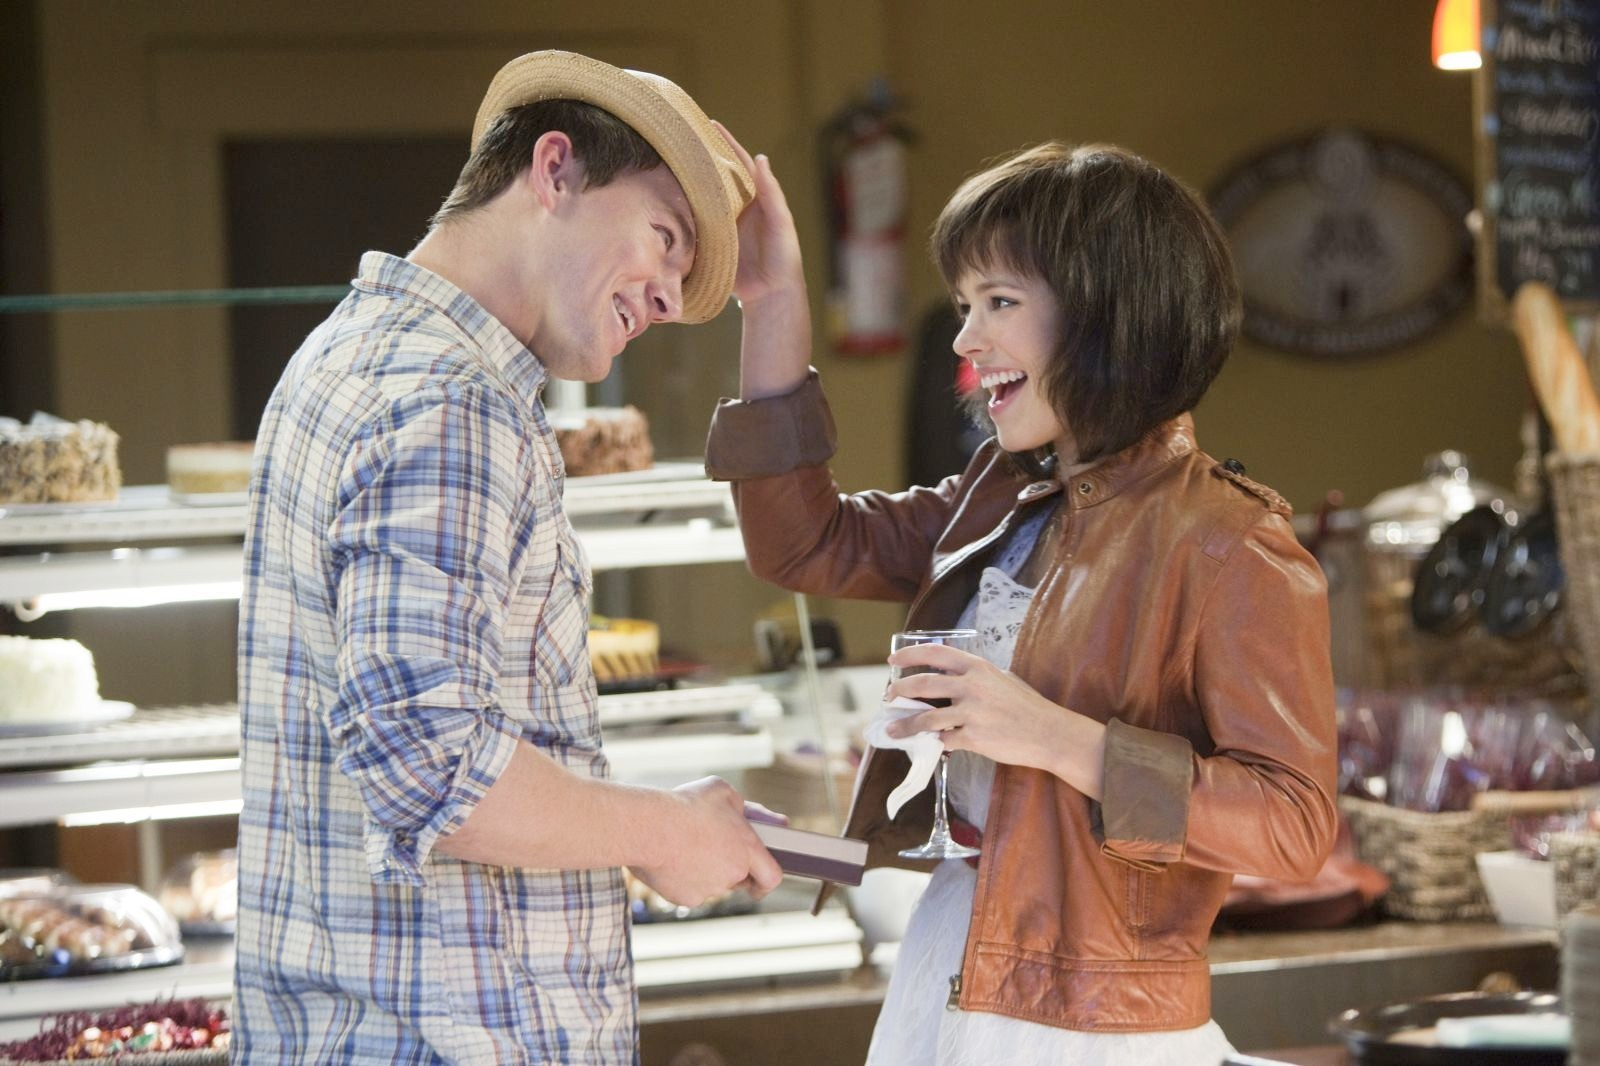 http://3.bp.blogspot.com/-W27pw7ky2BY/T2wvu2zULqI/AAAAAAAACKQ/2un0w9LaWLA/s1600/Channing-Tatum-and-Rachel-McAdams-in-The-Vow-2012.jpg